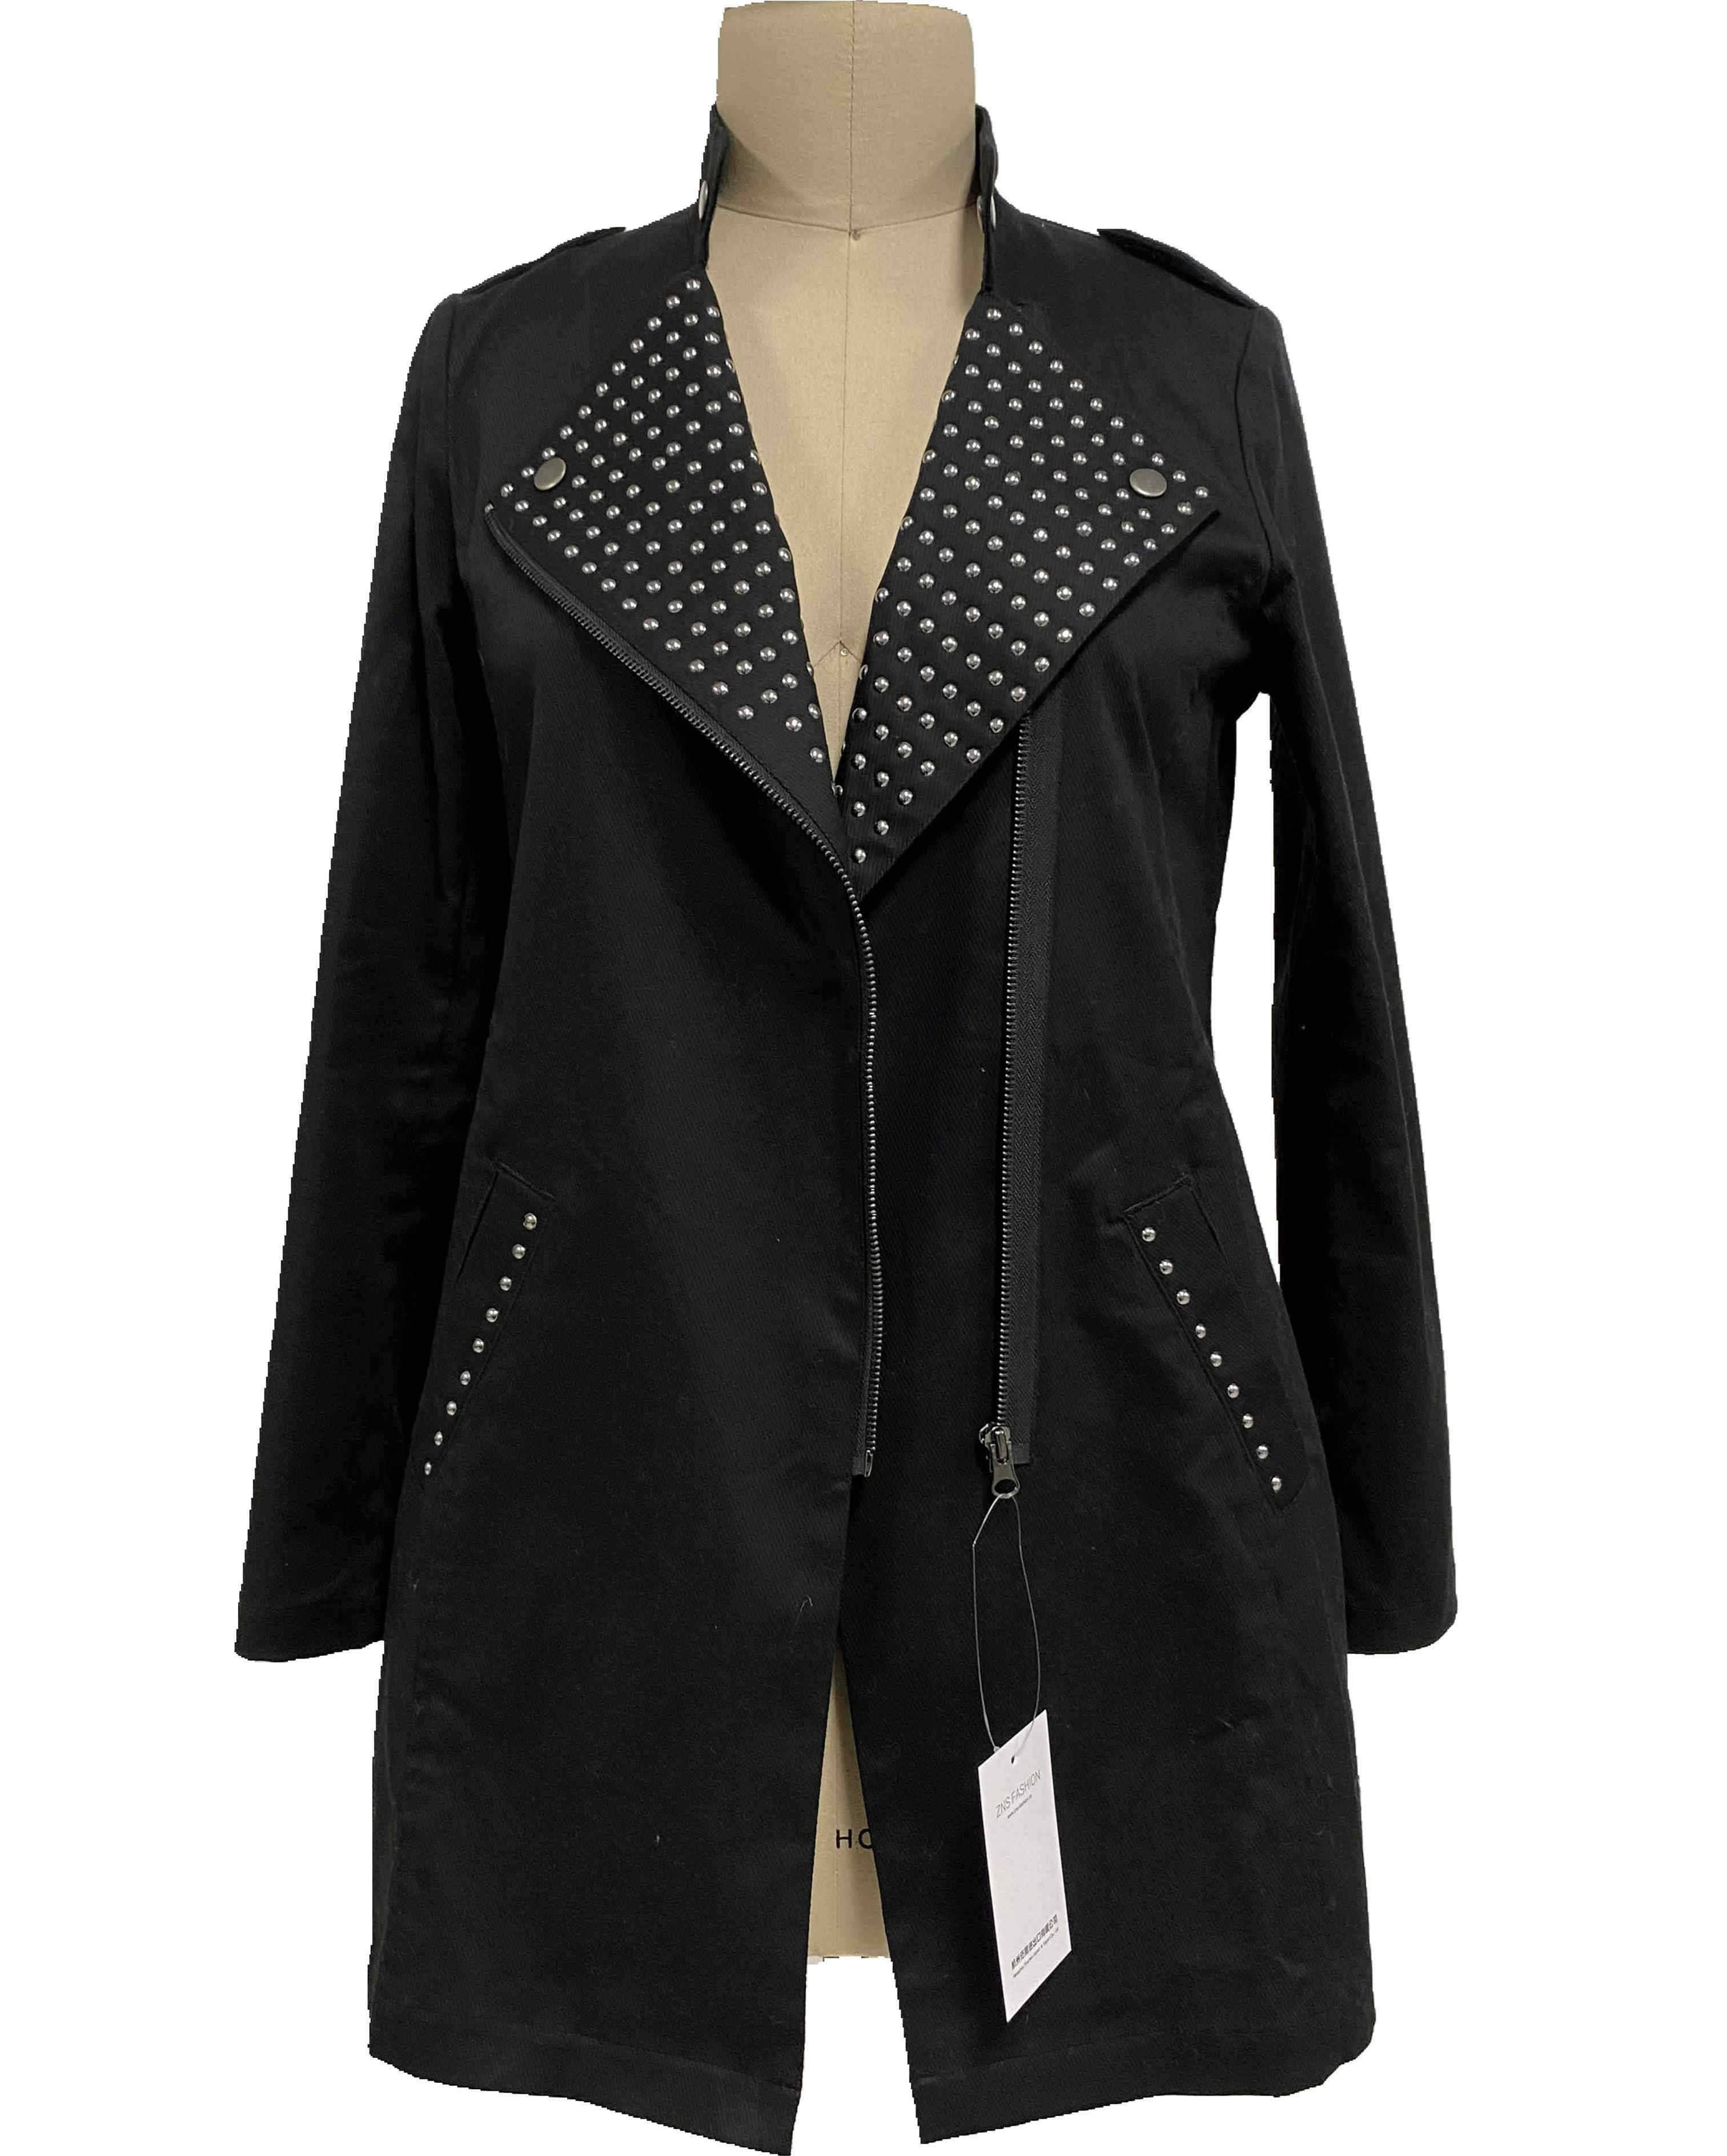 2021 modern basic long sleeve coat with rivets decoration at lapel and welt women wholesale